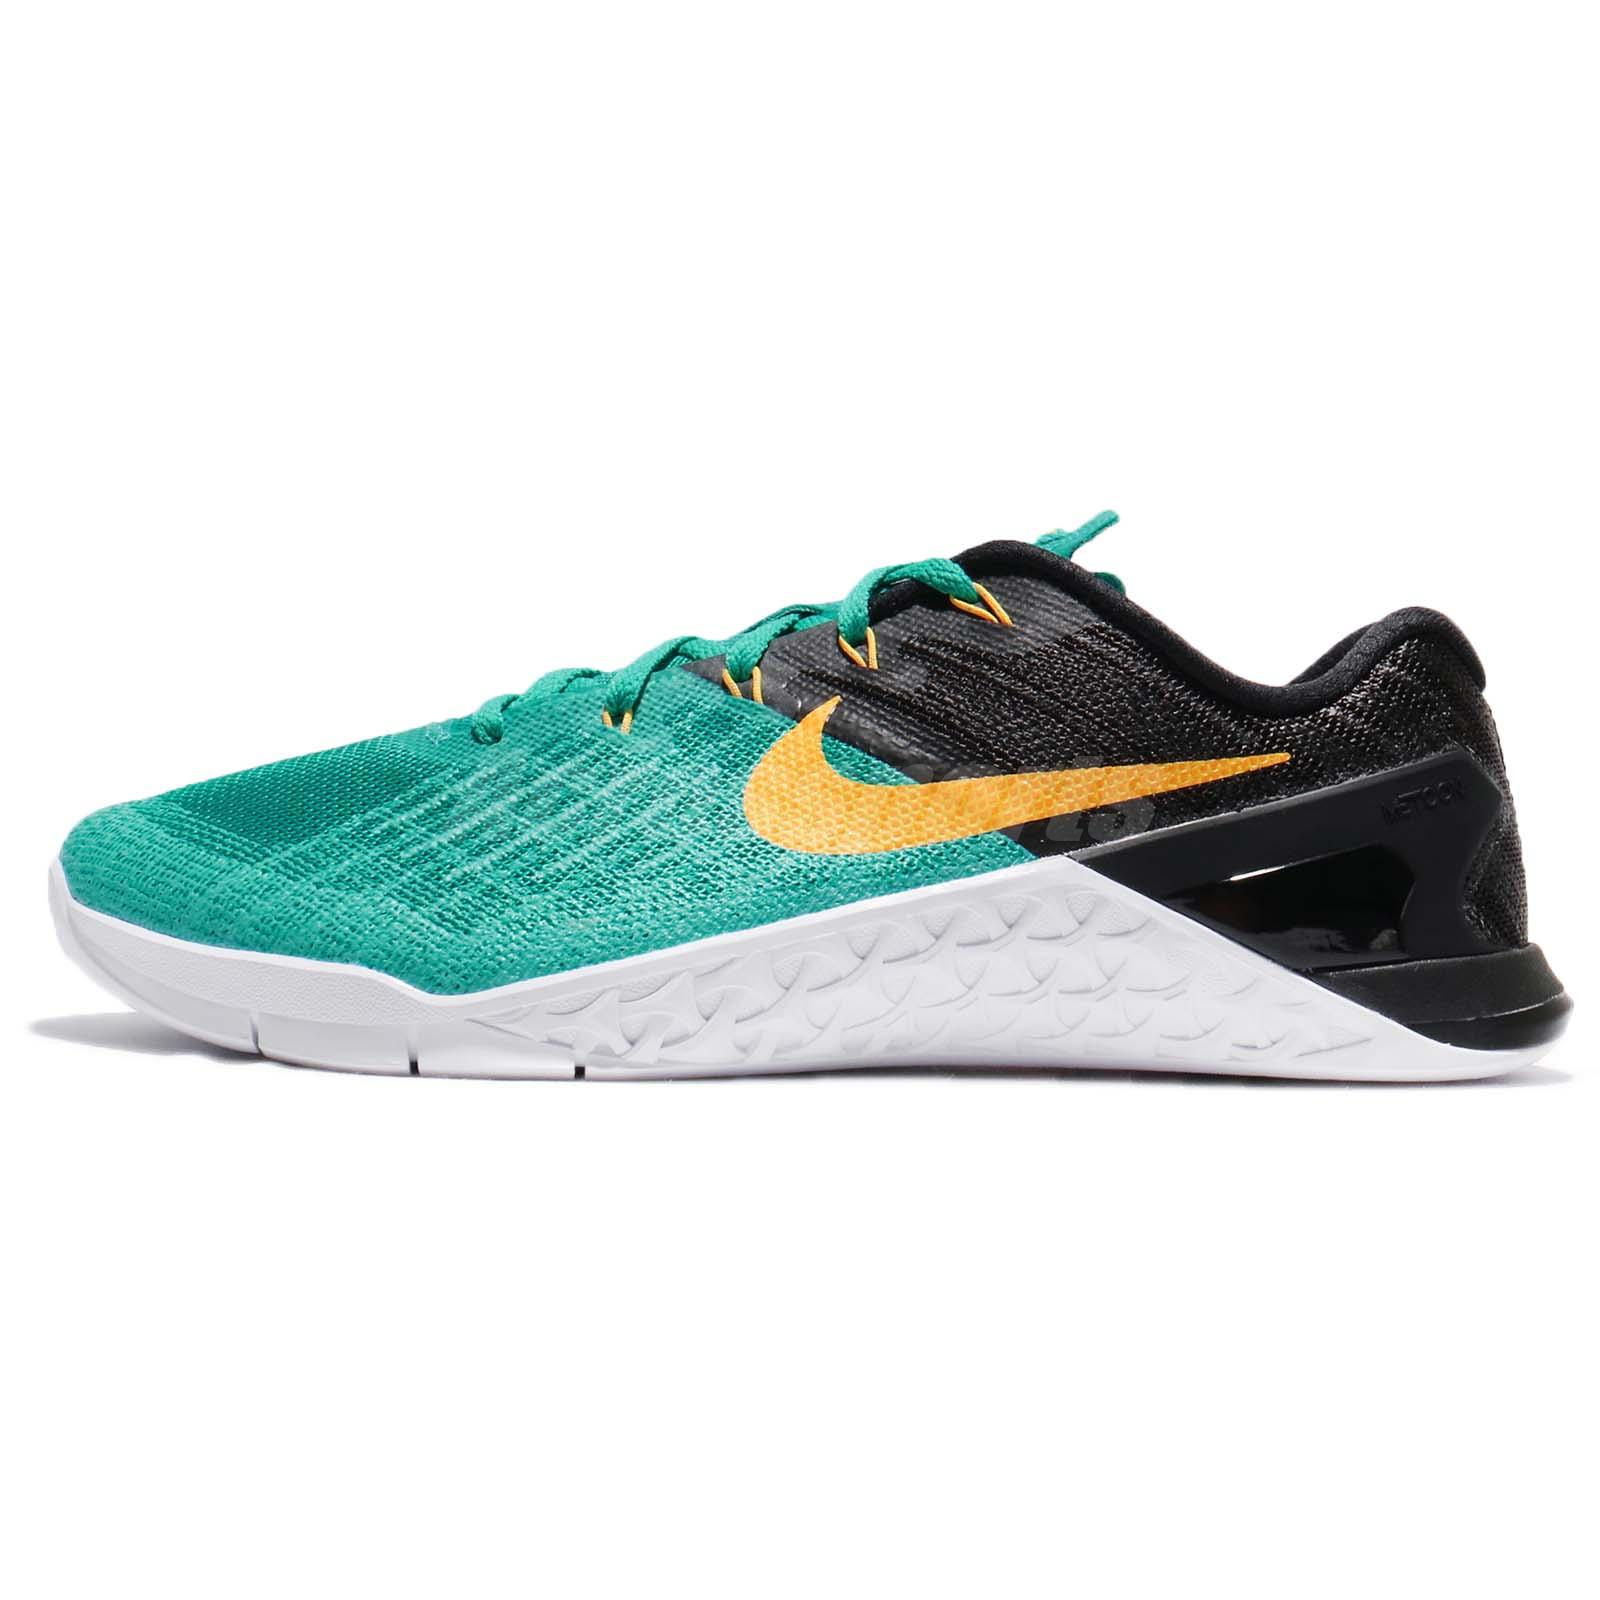 e8fb9dfa6cf1 Nike Metcon 3 III Clear Jade Laser Orange Men Training Lifting Shoes  852928-300